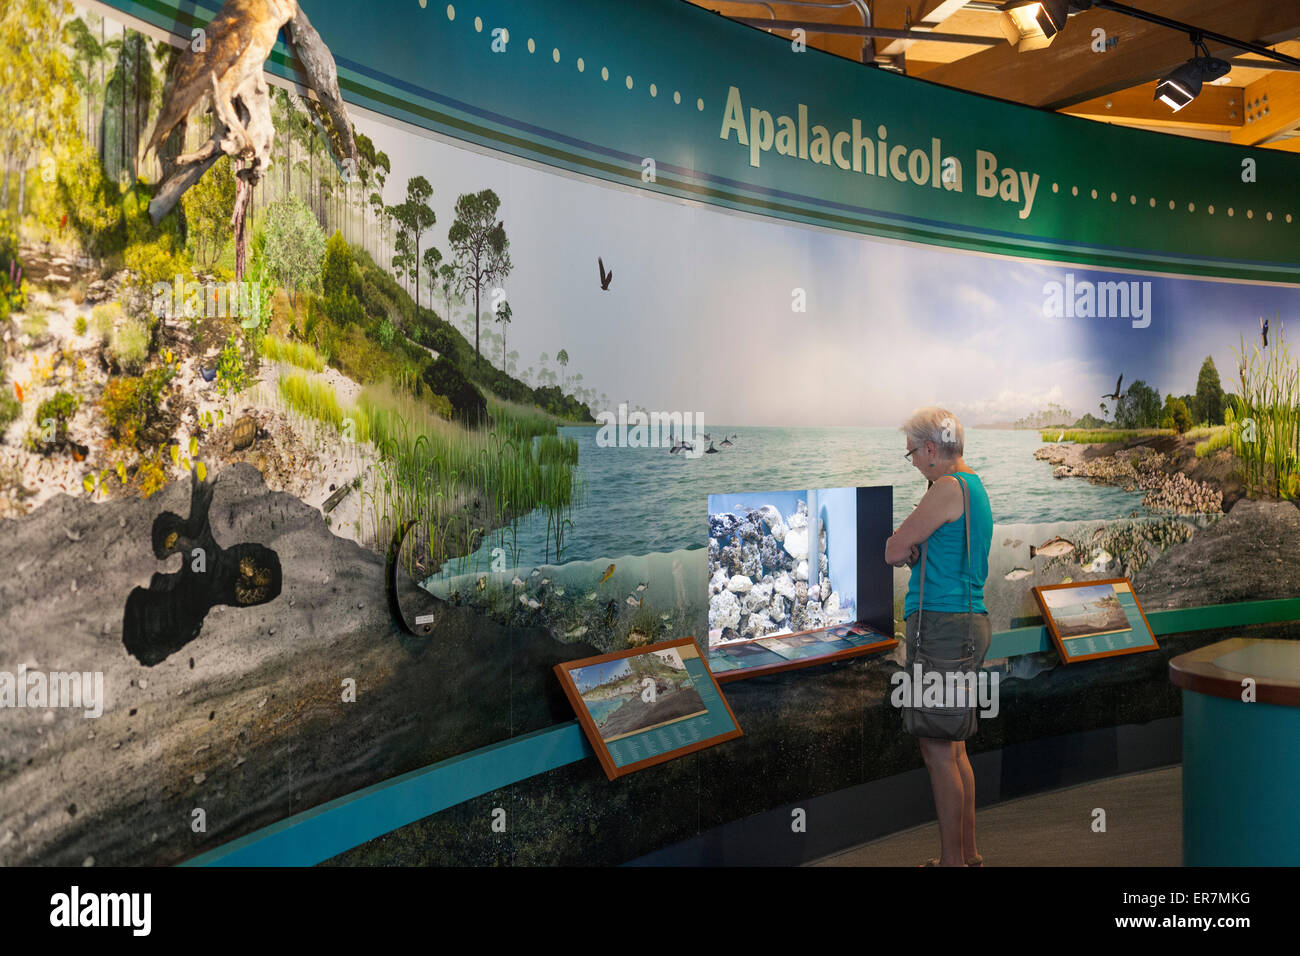 Eastpoint, Florida - The visitor center of the Apalachicola National Estuarine Research Reserve. - Stock Image